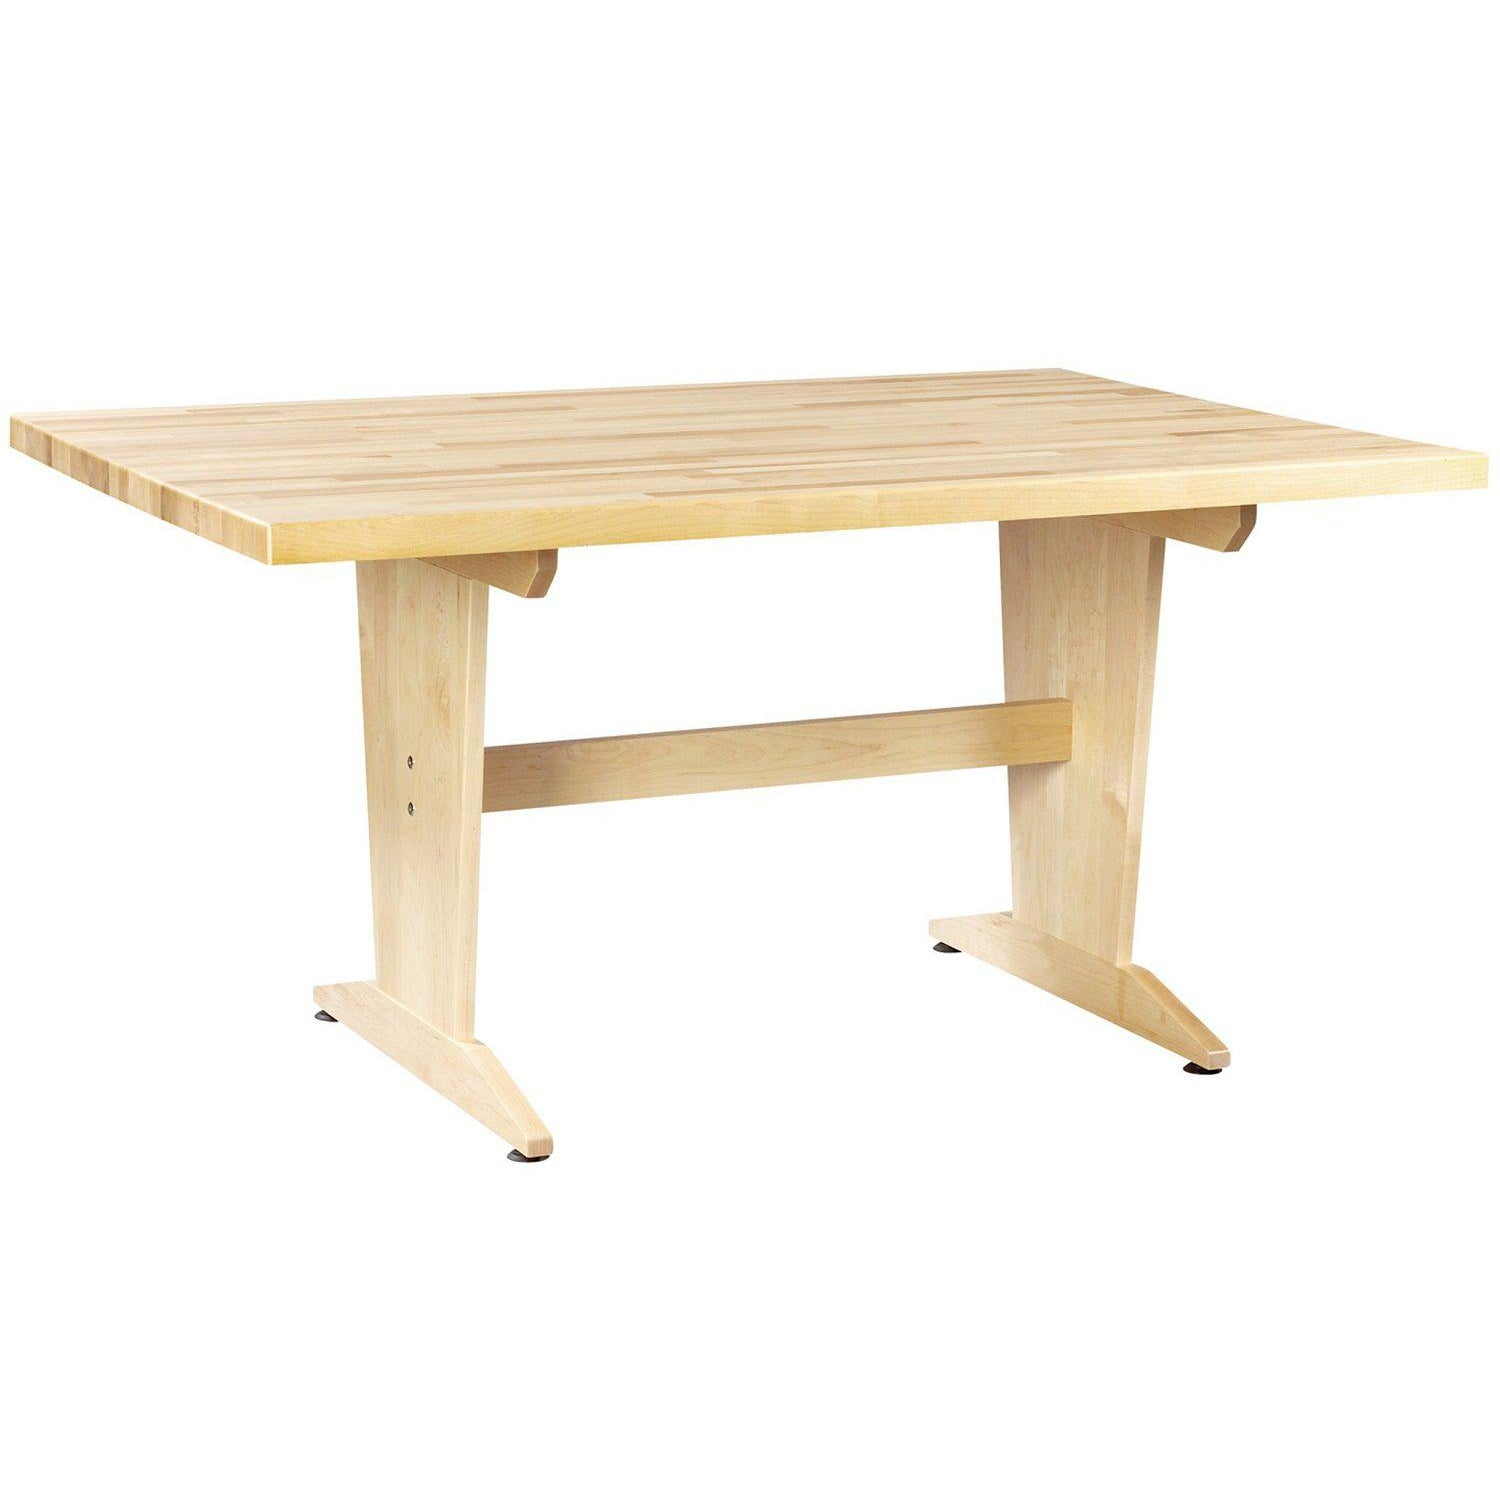 "Art/Planning Table, 30"" High"